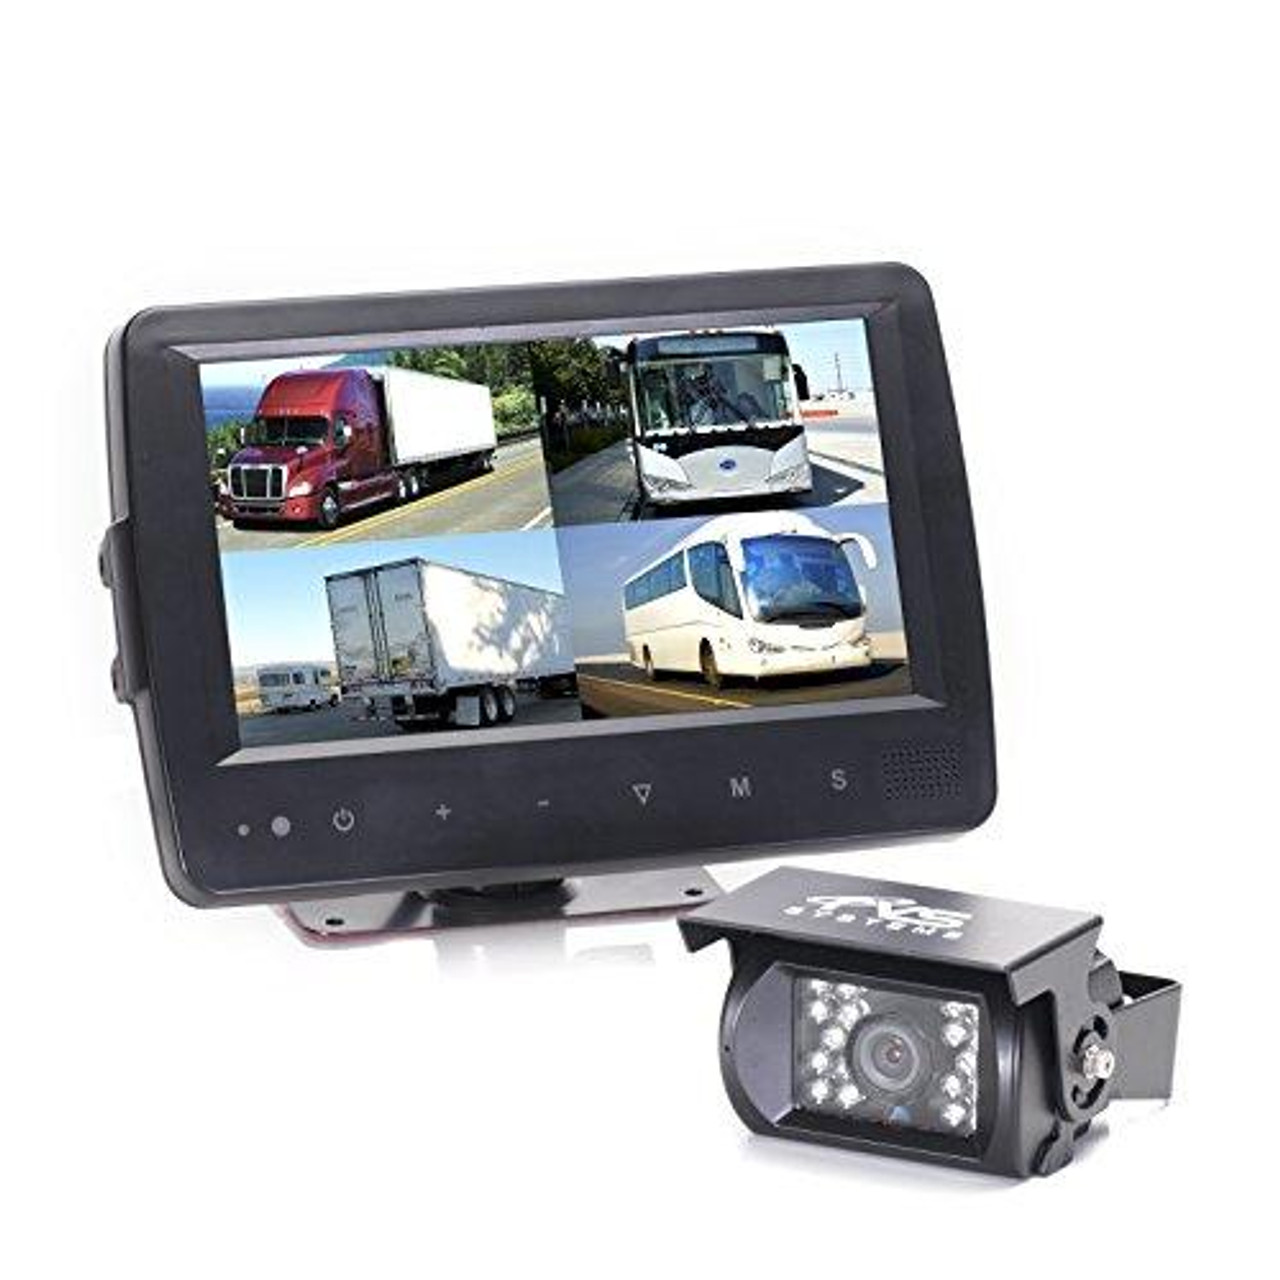 Rear View Safety RVS-7709900Q Video Camera with 7-Inch LCD (Black)